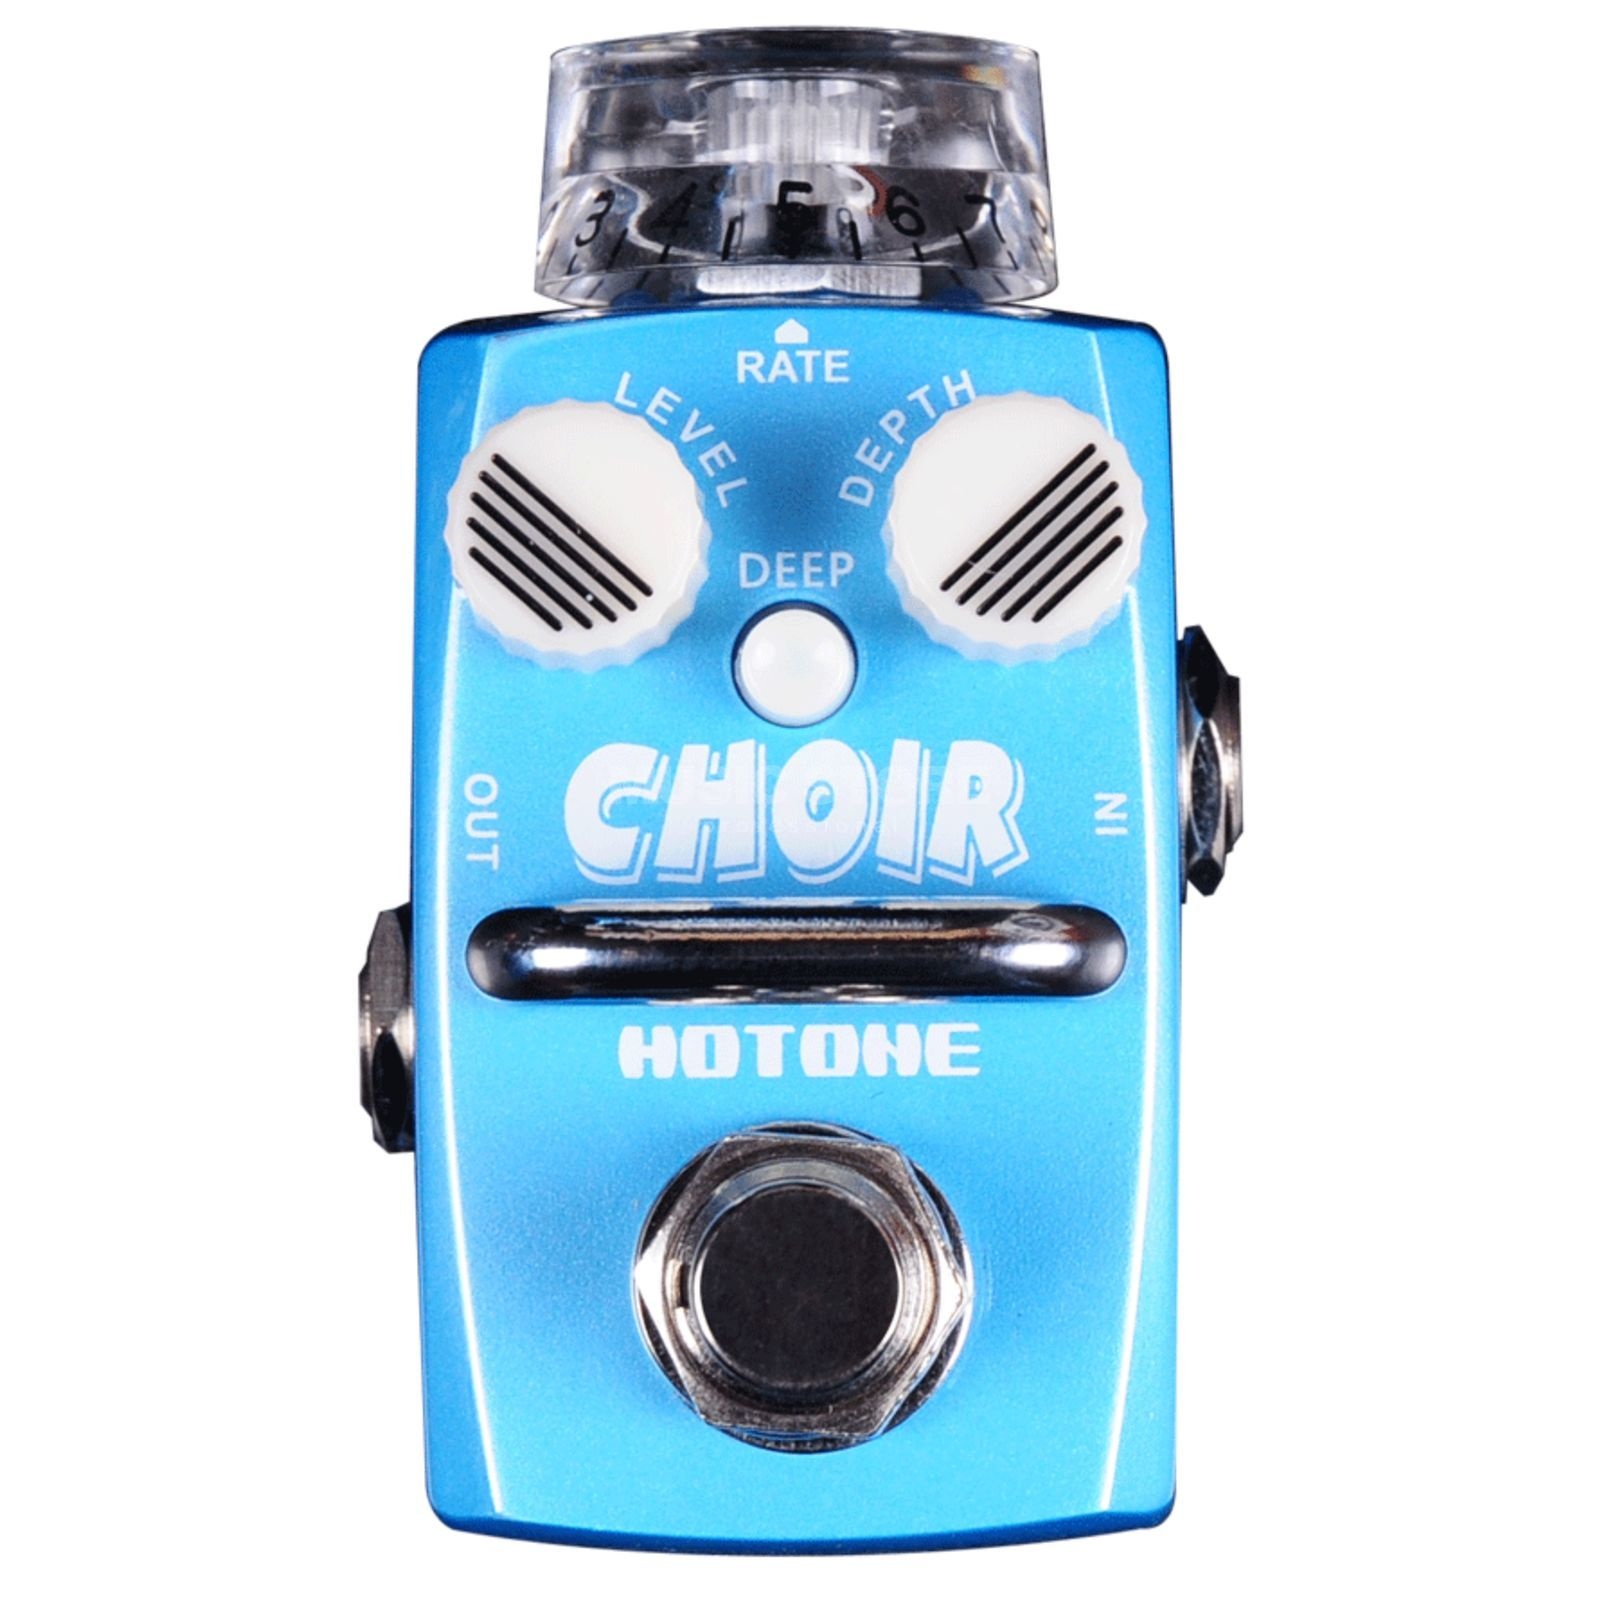 Hotone Skyline Choir Analog Chorus Produktbild